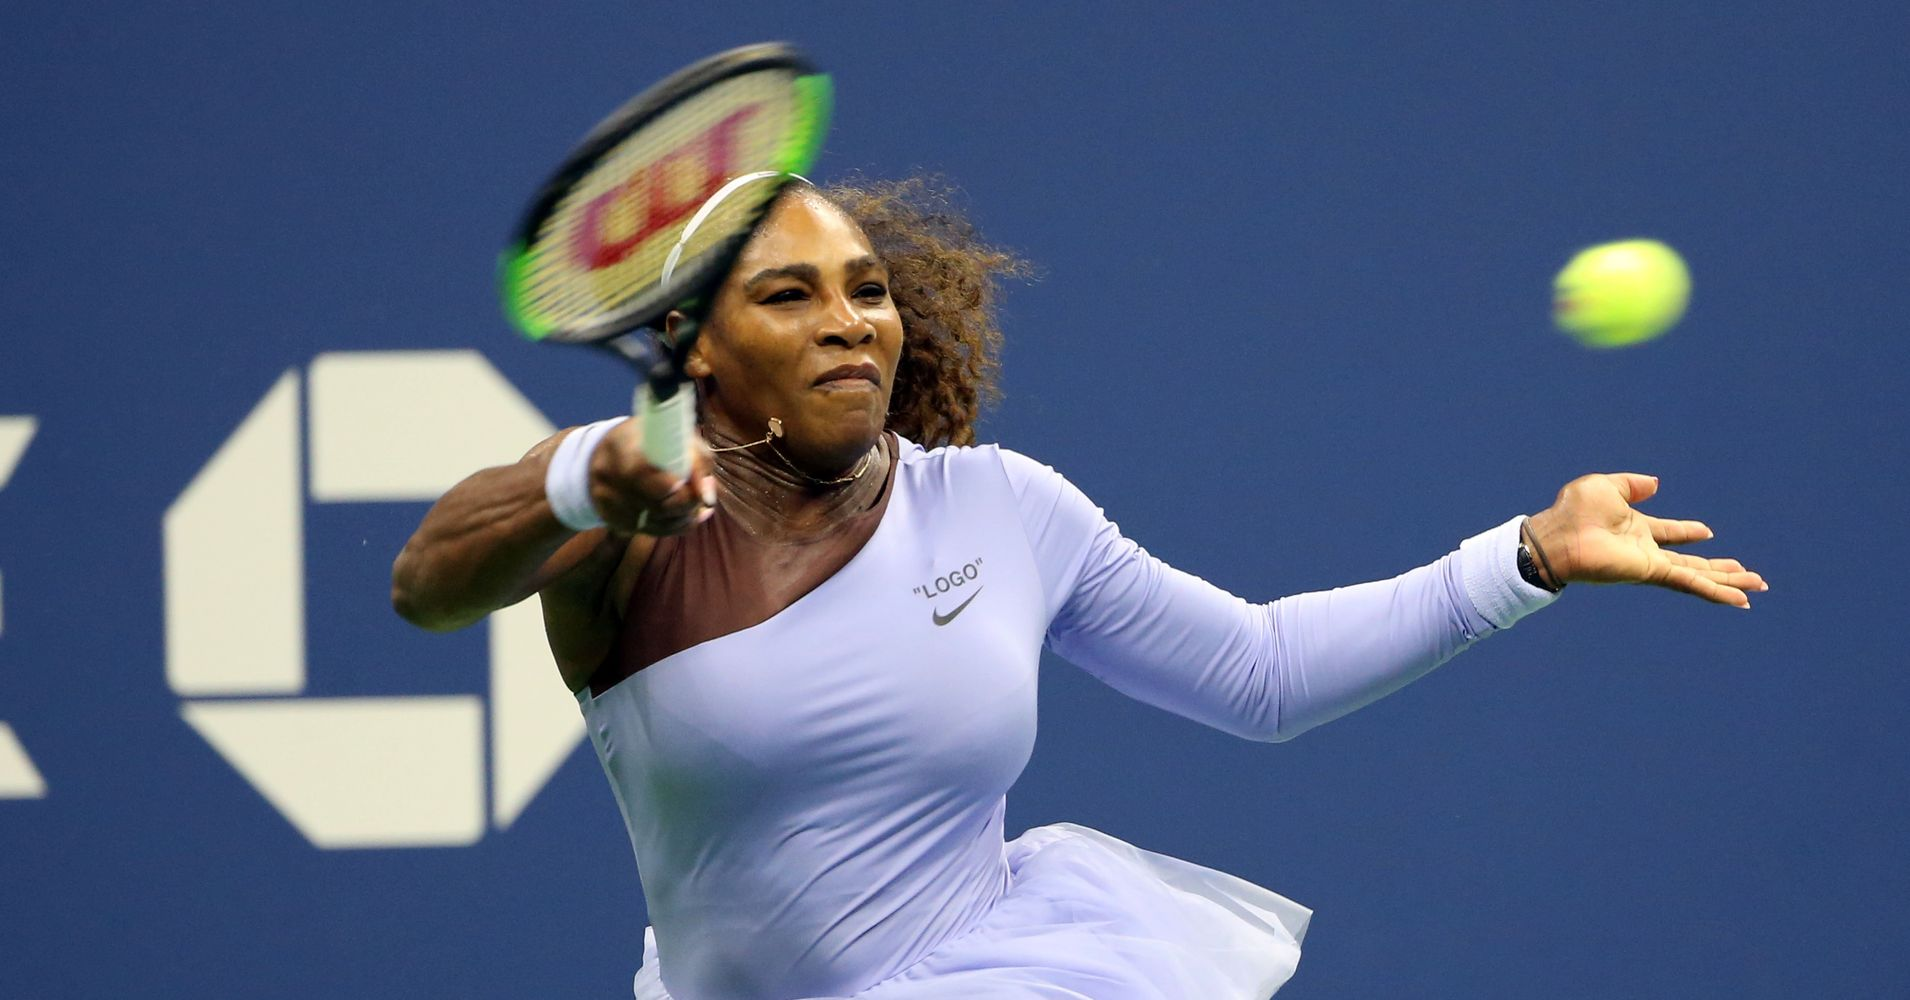 Serena Williams' Lavender Tutu Is Another Slammin' Hit At The U.S. Open